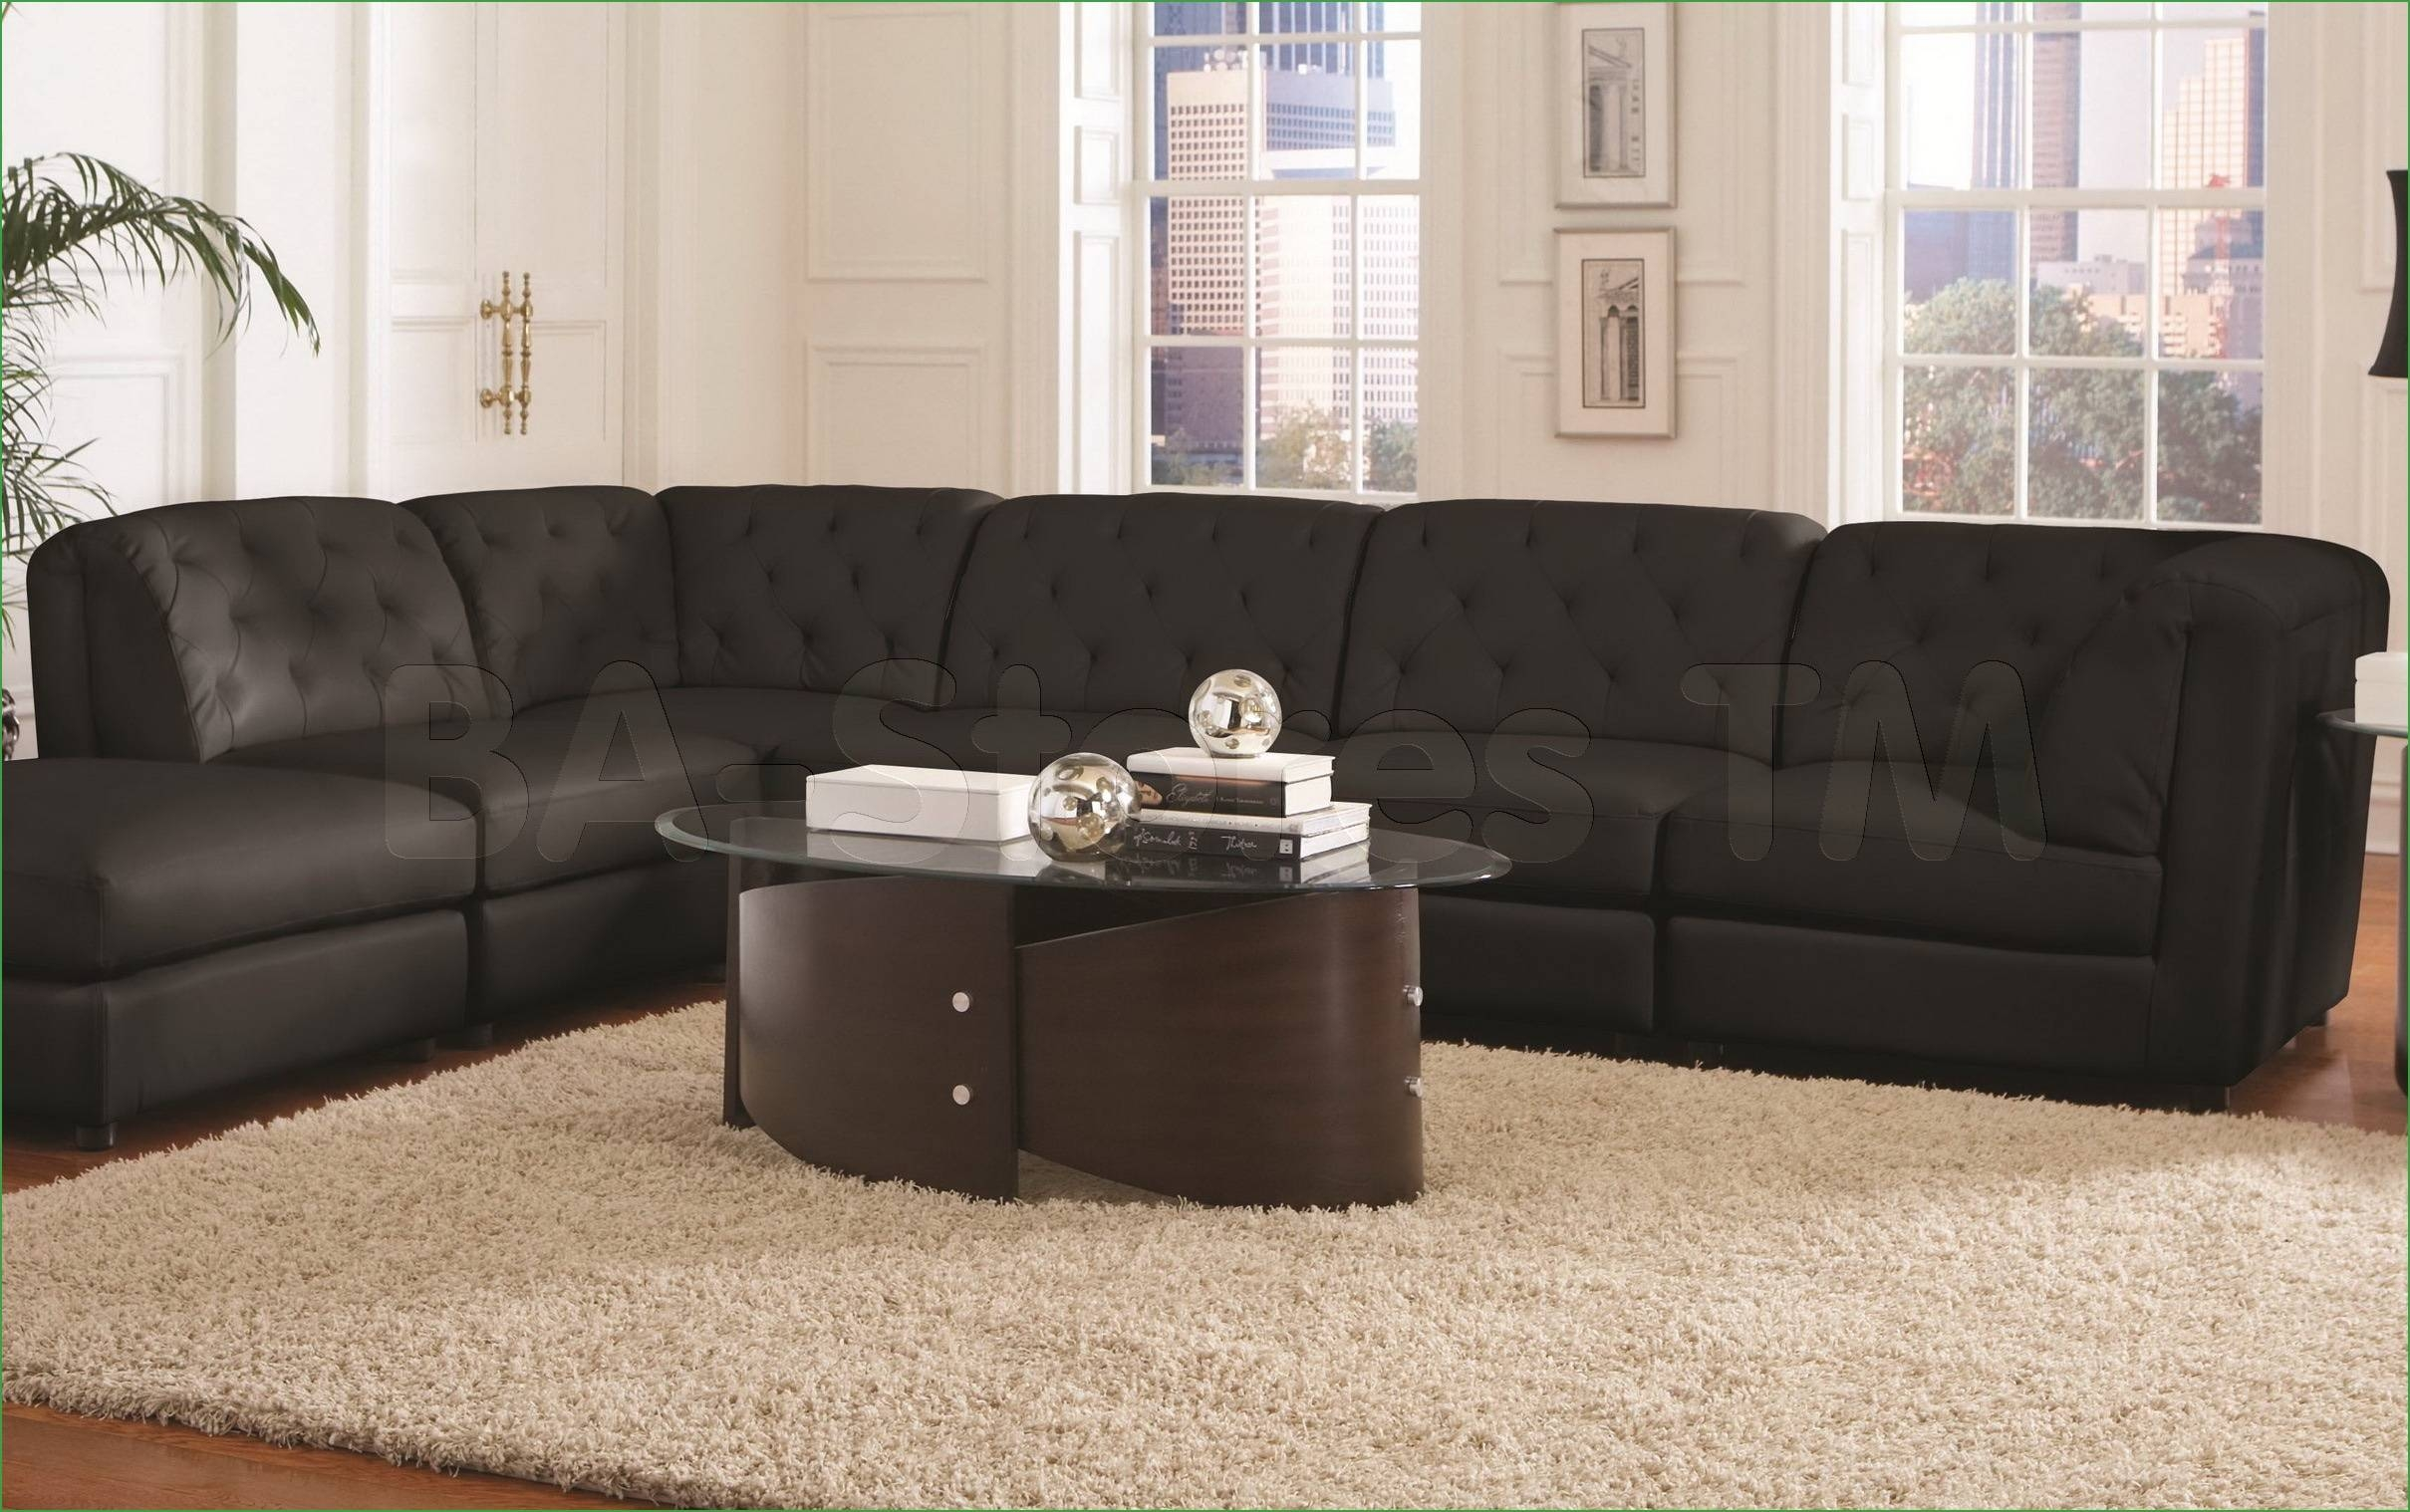 Sofa : Queen Sofa Sleeper Sectional Microfiber Decoration Ideas with Queen Sofa Sleeper Sectional Microfiber (Image 21 of 25)